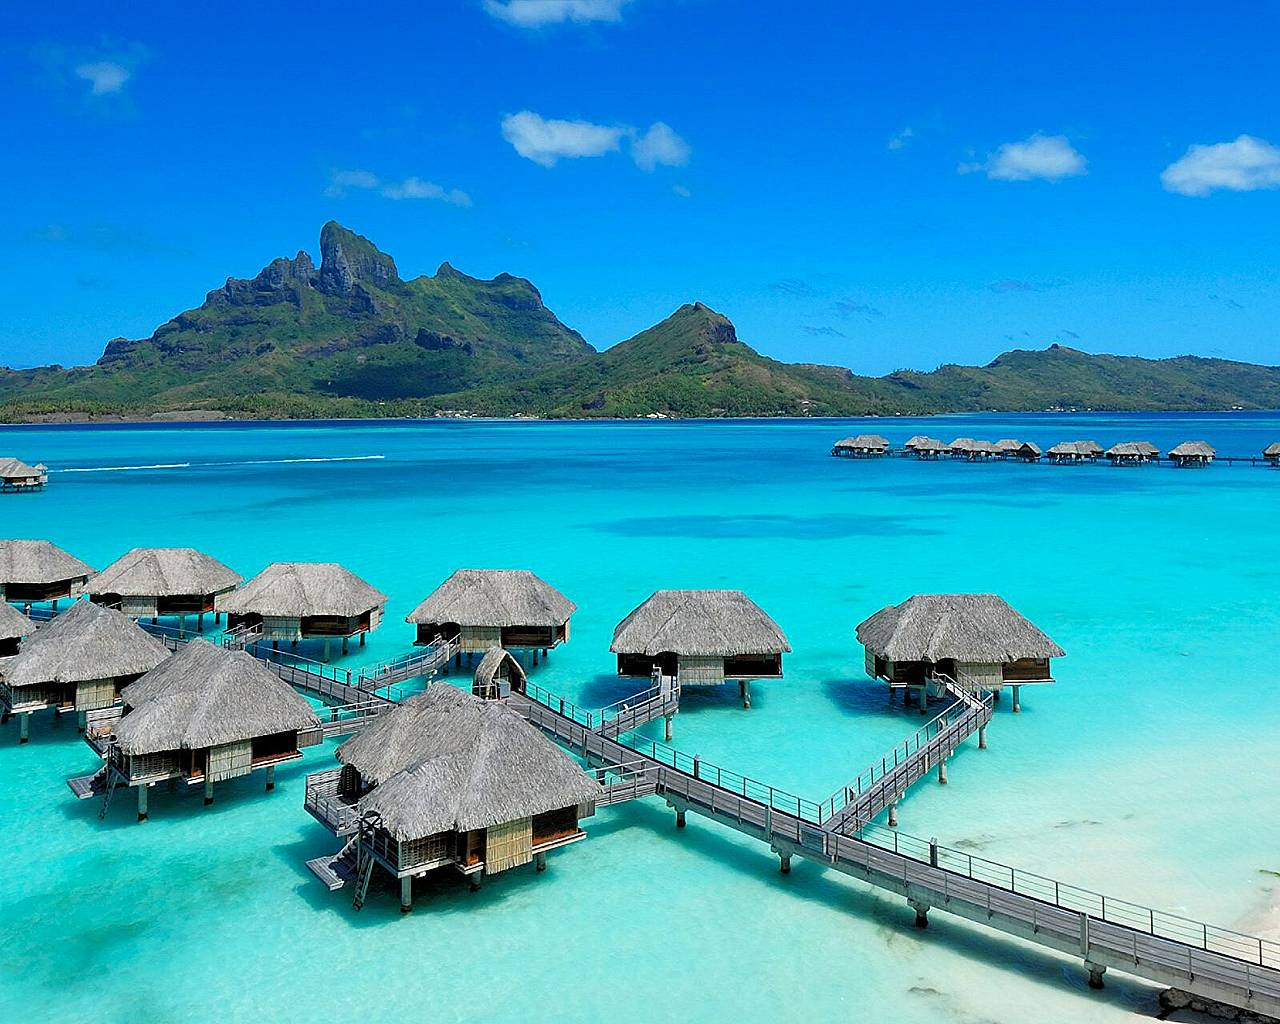 Tahiti Bora Paradise Luxury Accomodation Best Hotels Beach Huts Water Bungalow Holiday Resort Four The Seasons On